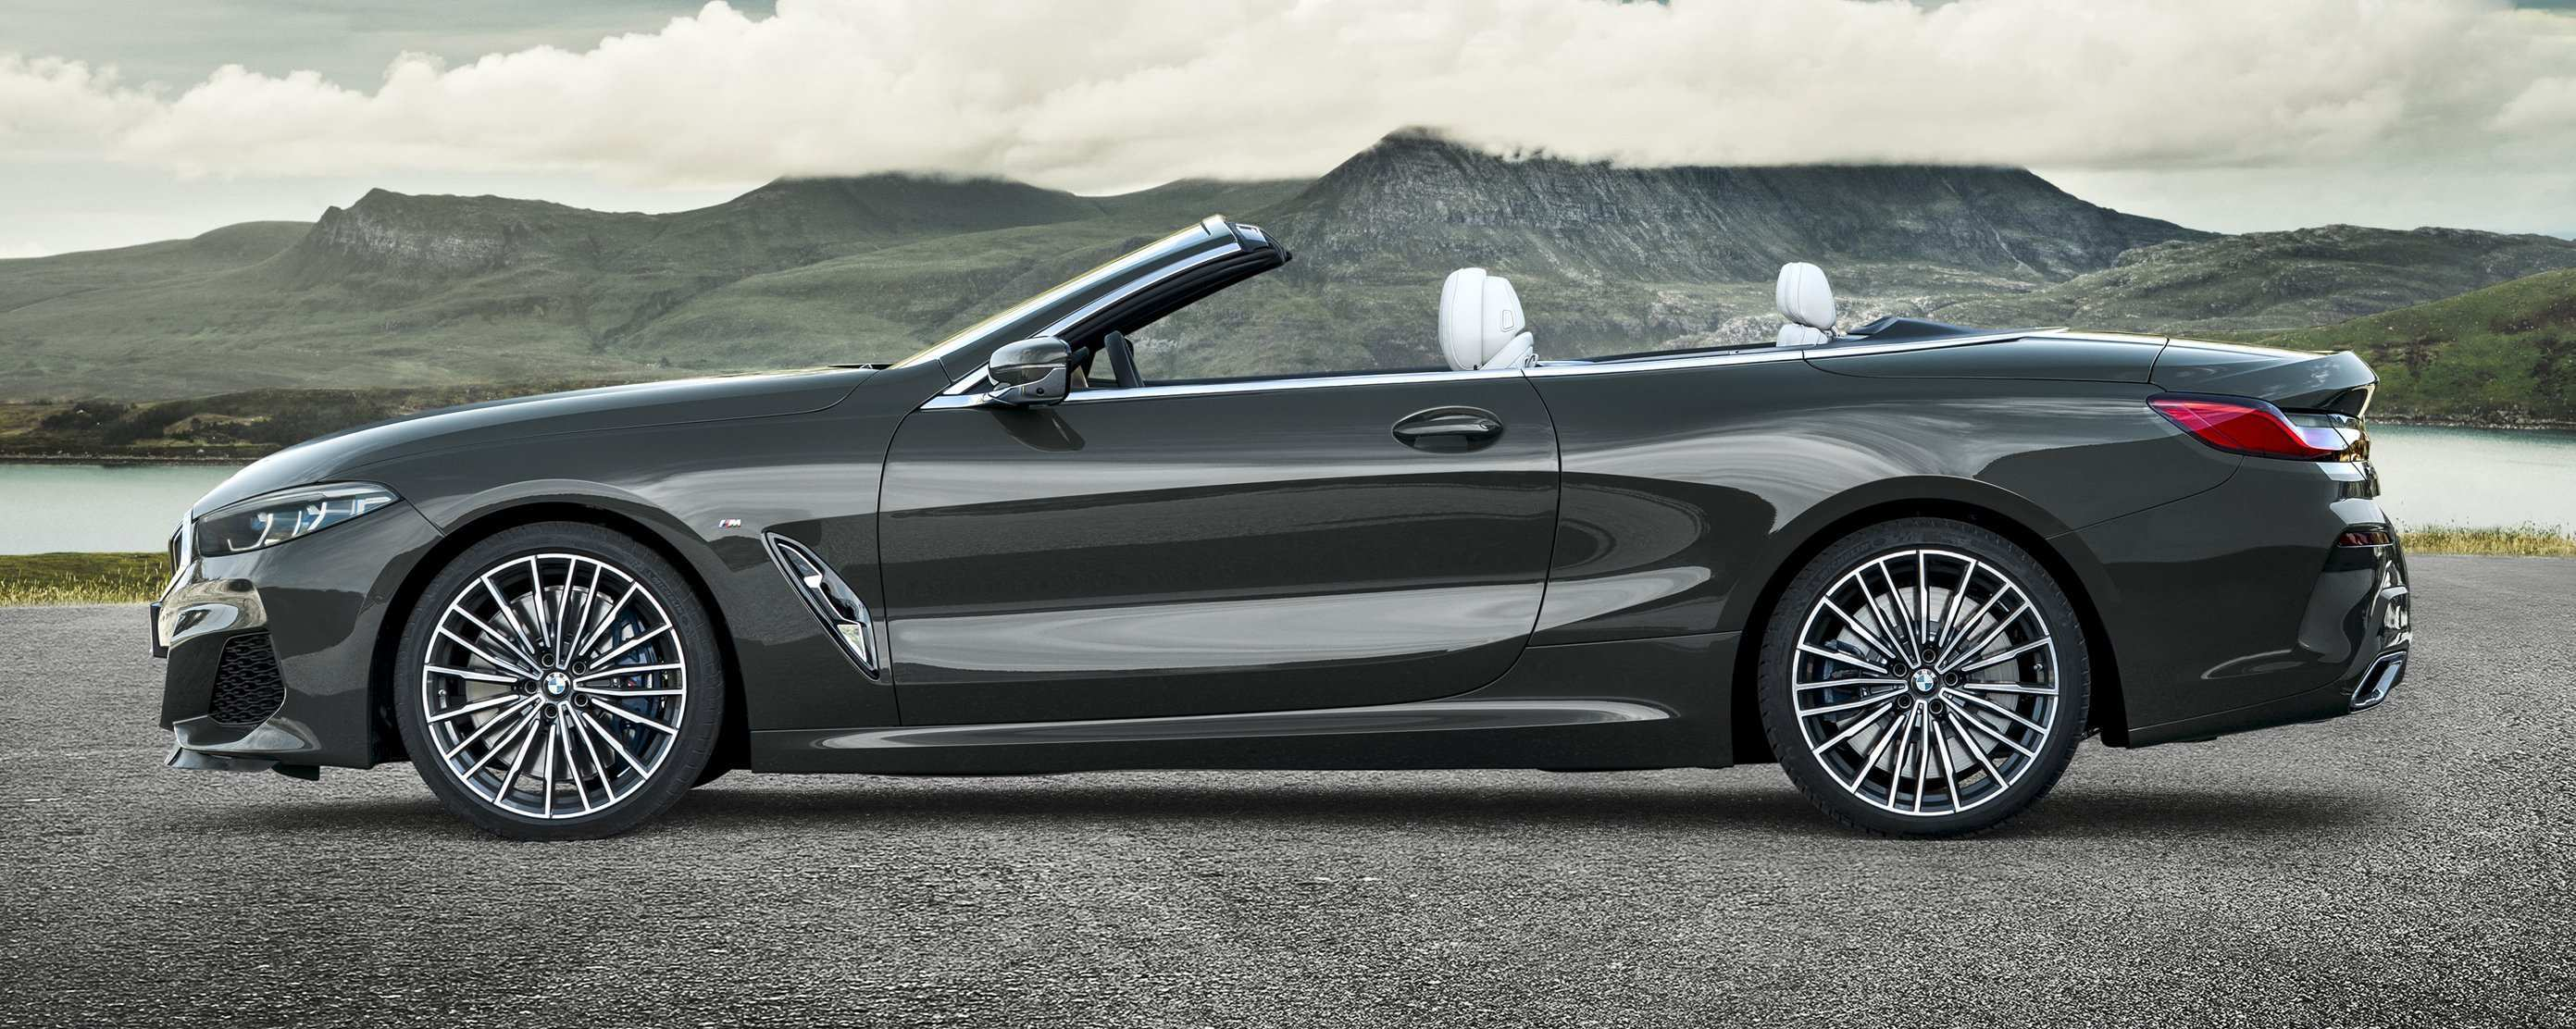 42 New 2020 Bmw 6 Series Convertible Pictures